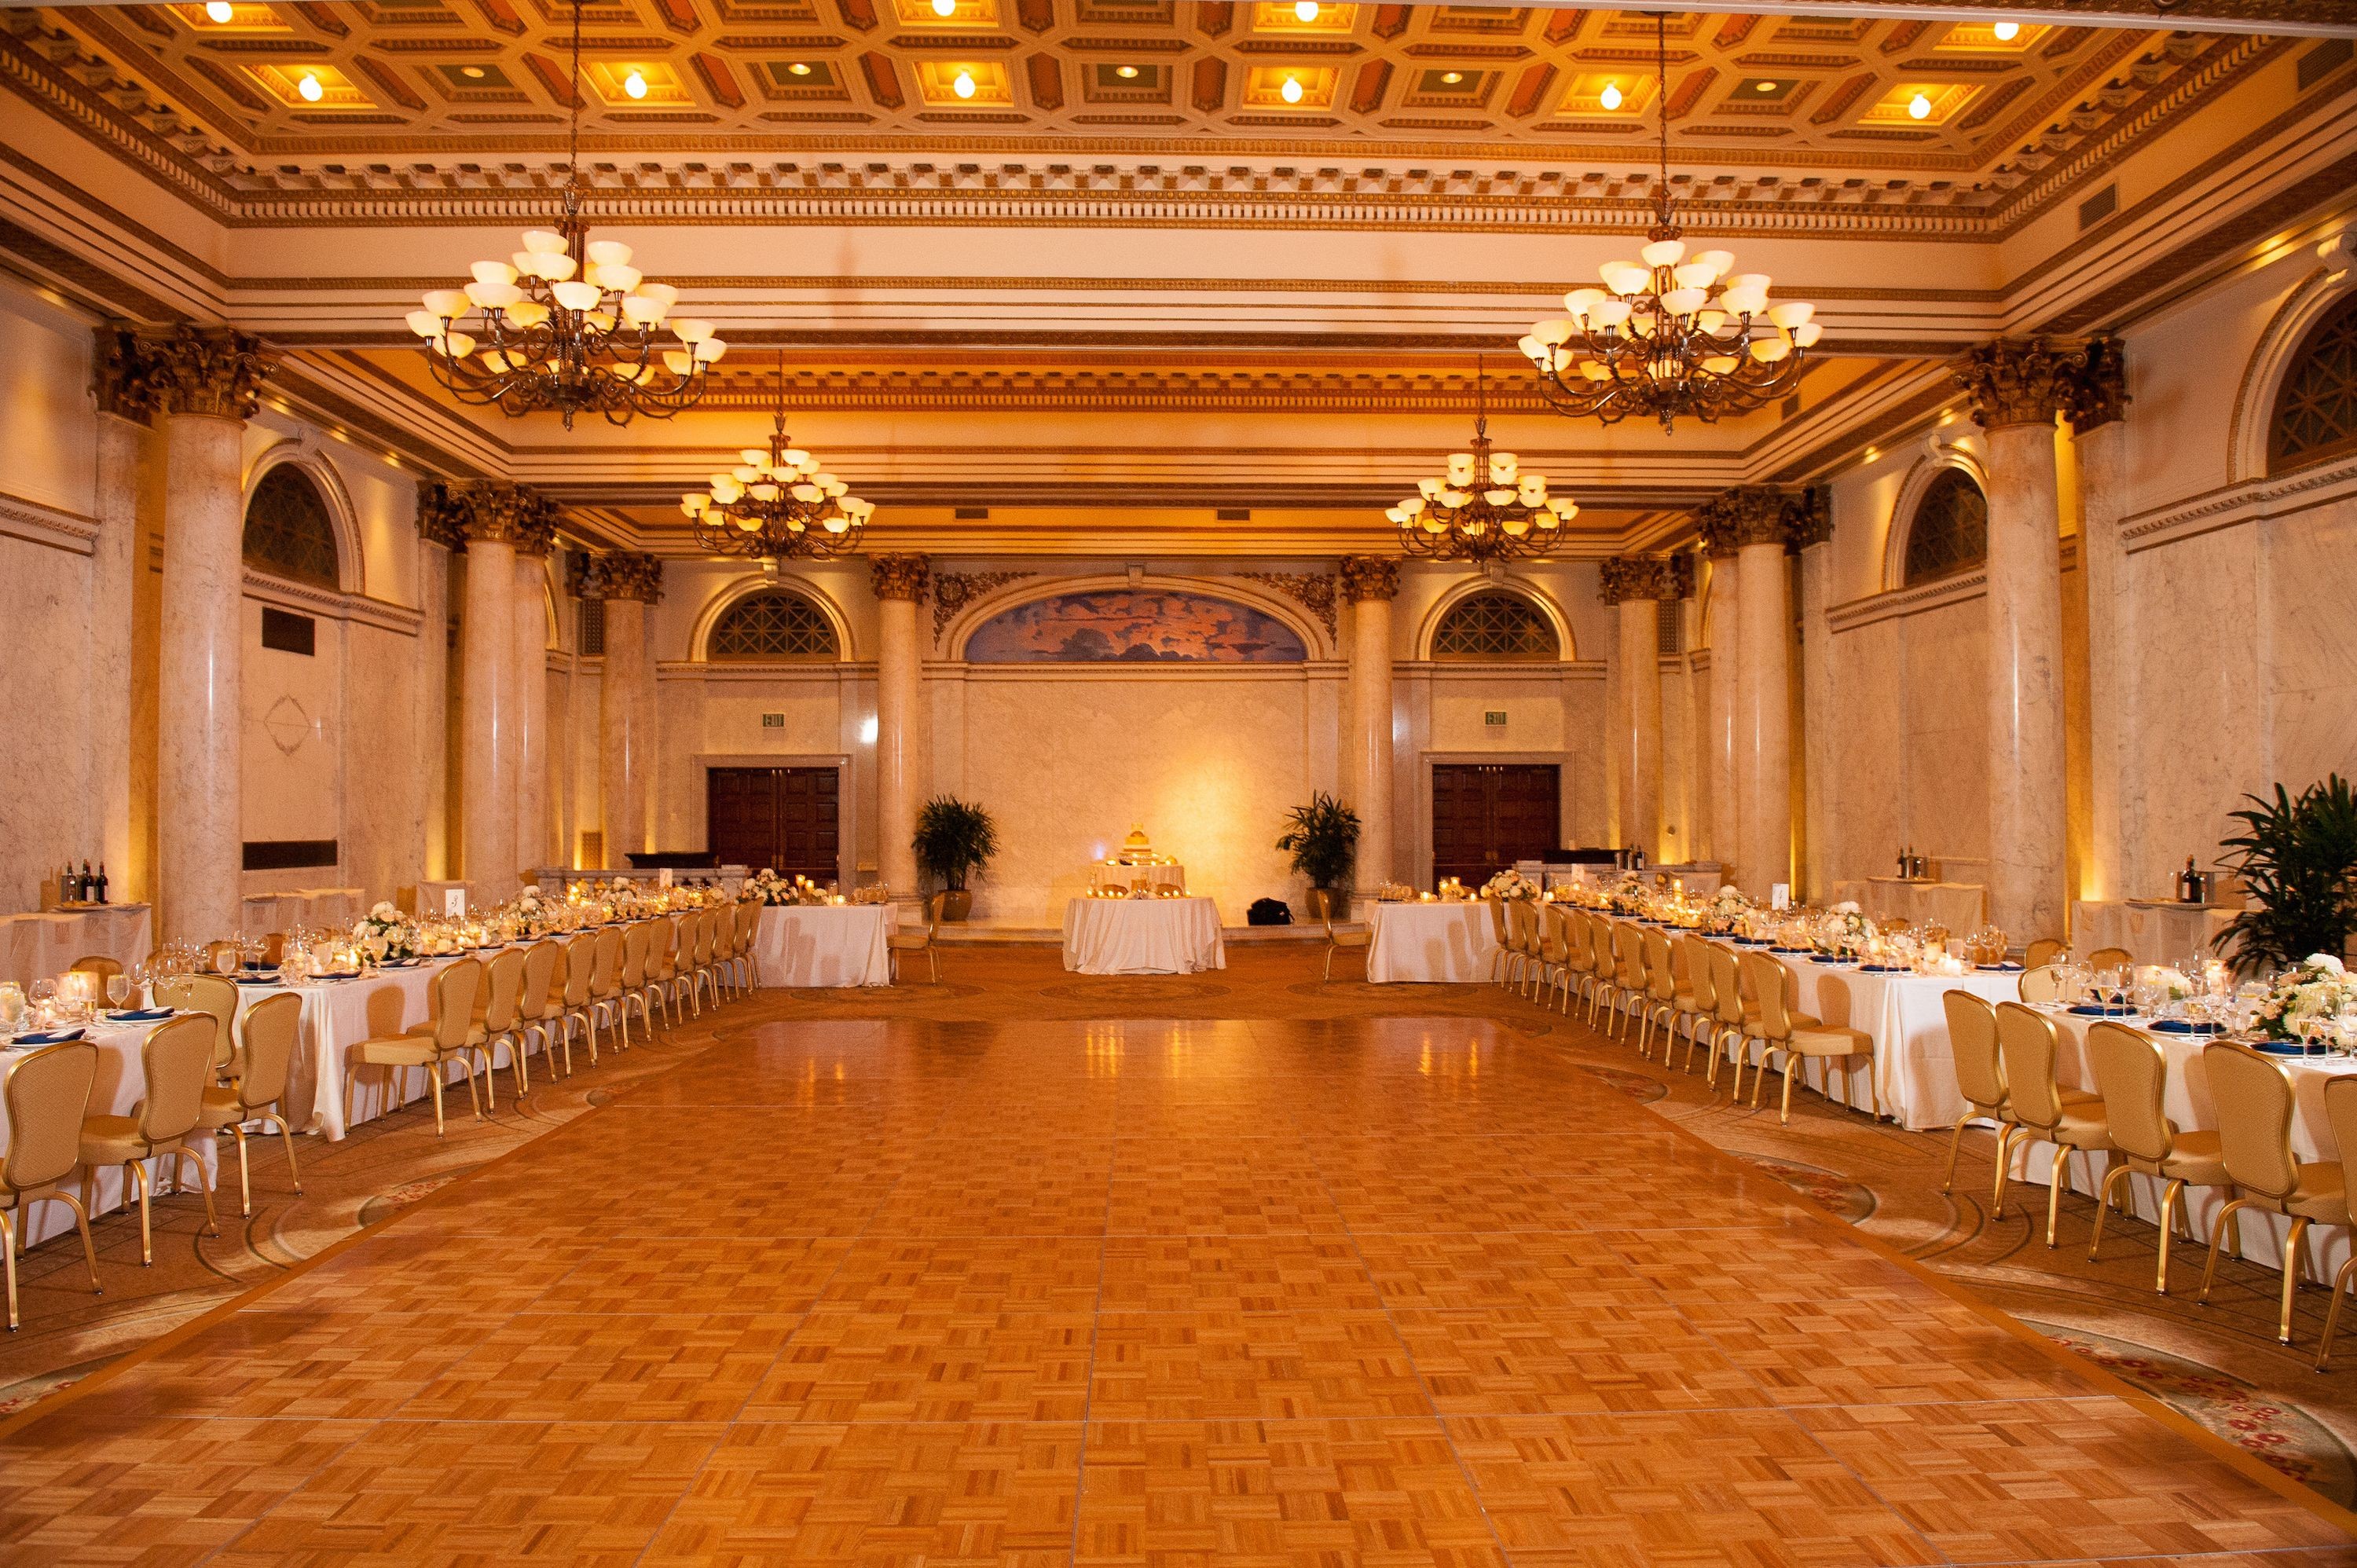 Large Ornate Room Stock Photos &- Large Ornate Room Stock Images ...